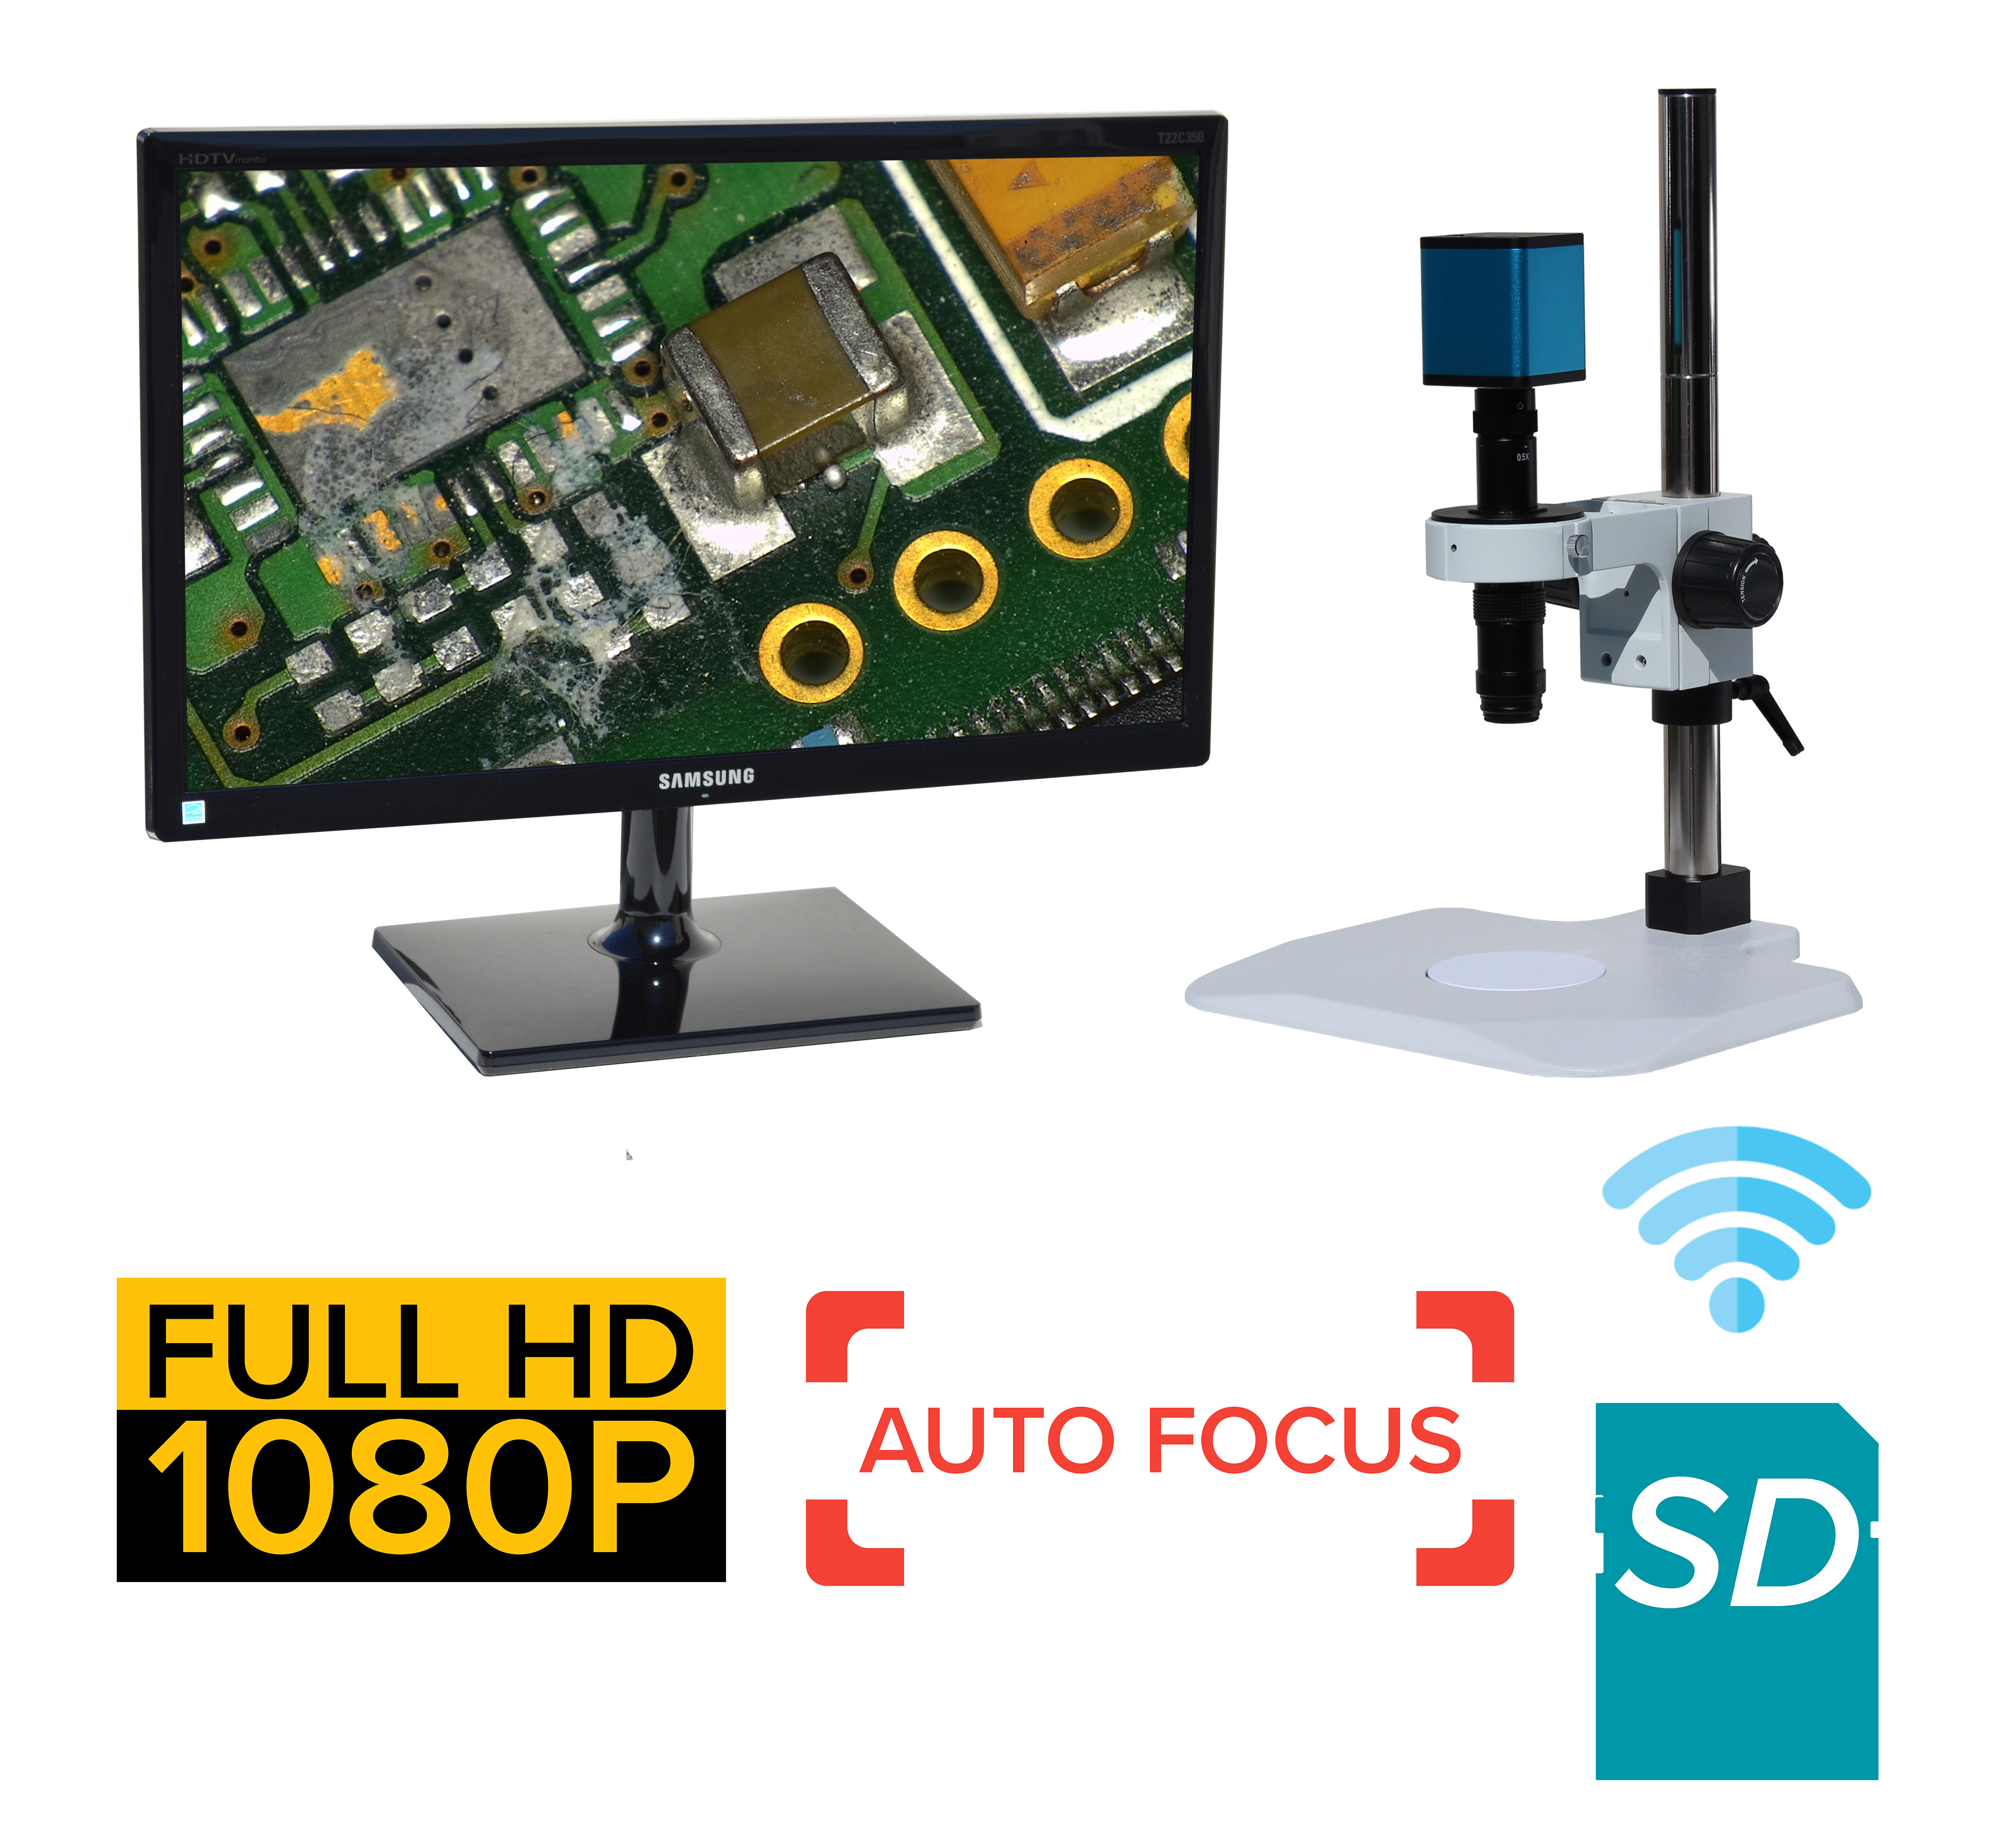 eHDAF202 series 12x-639x Auto Focus + Wi-Fi + HD1080p + SD card [Start at $2100]